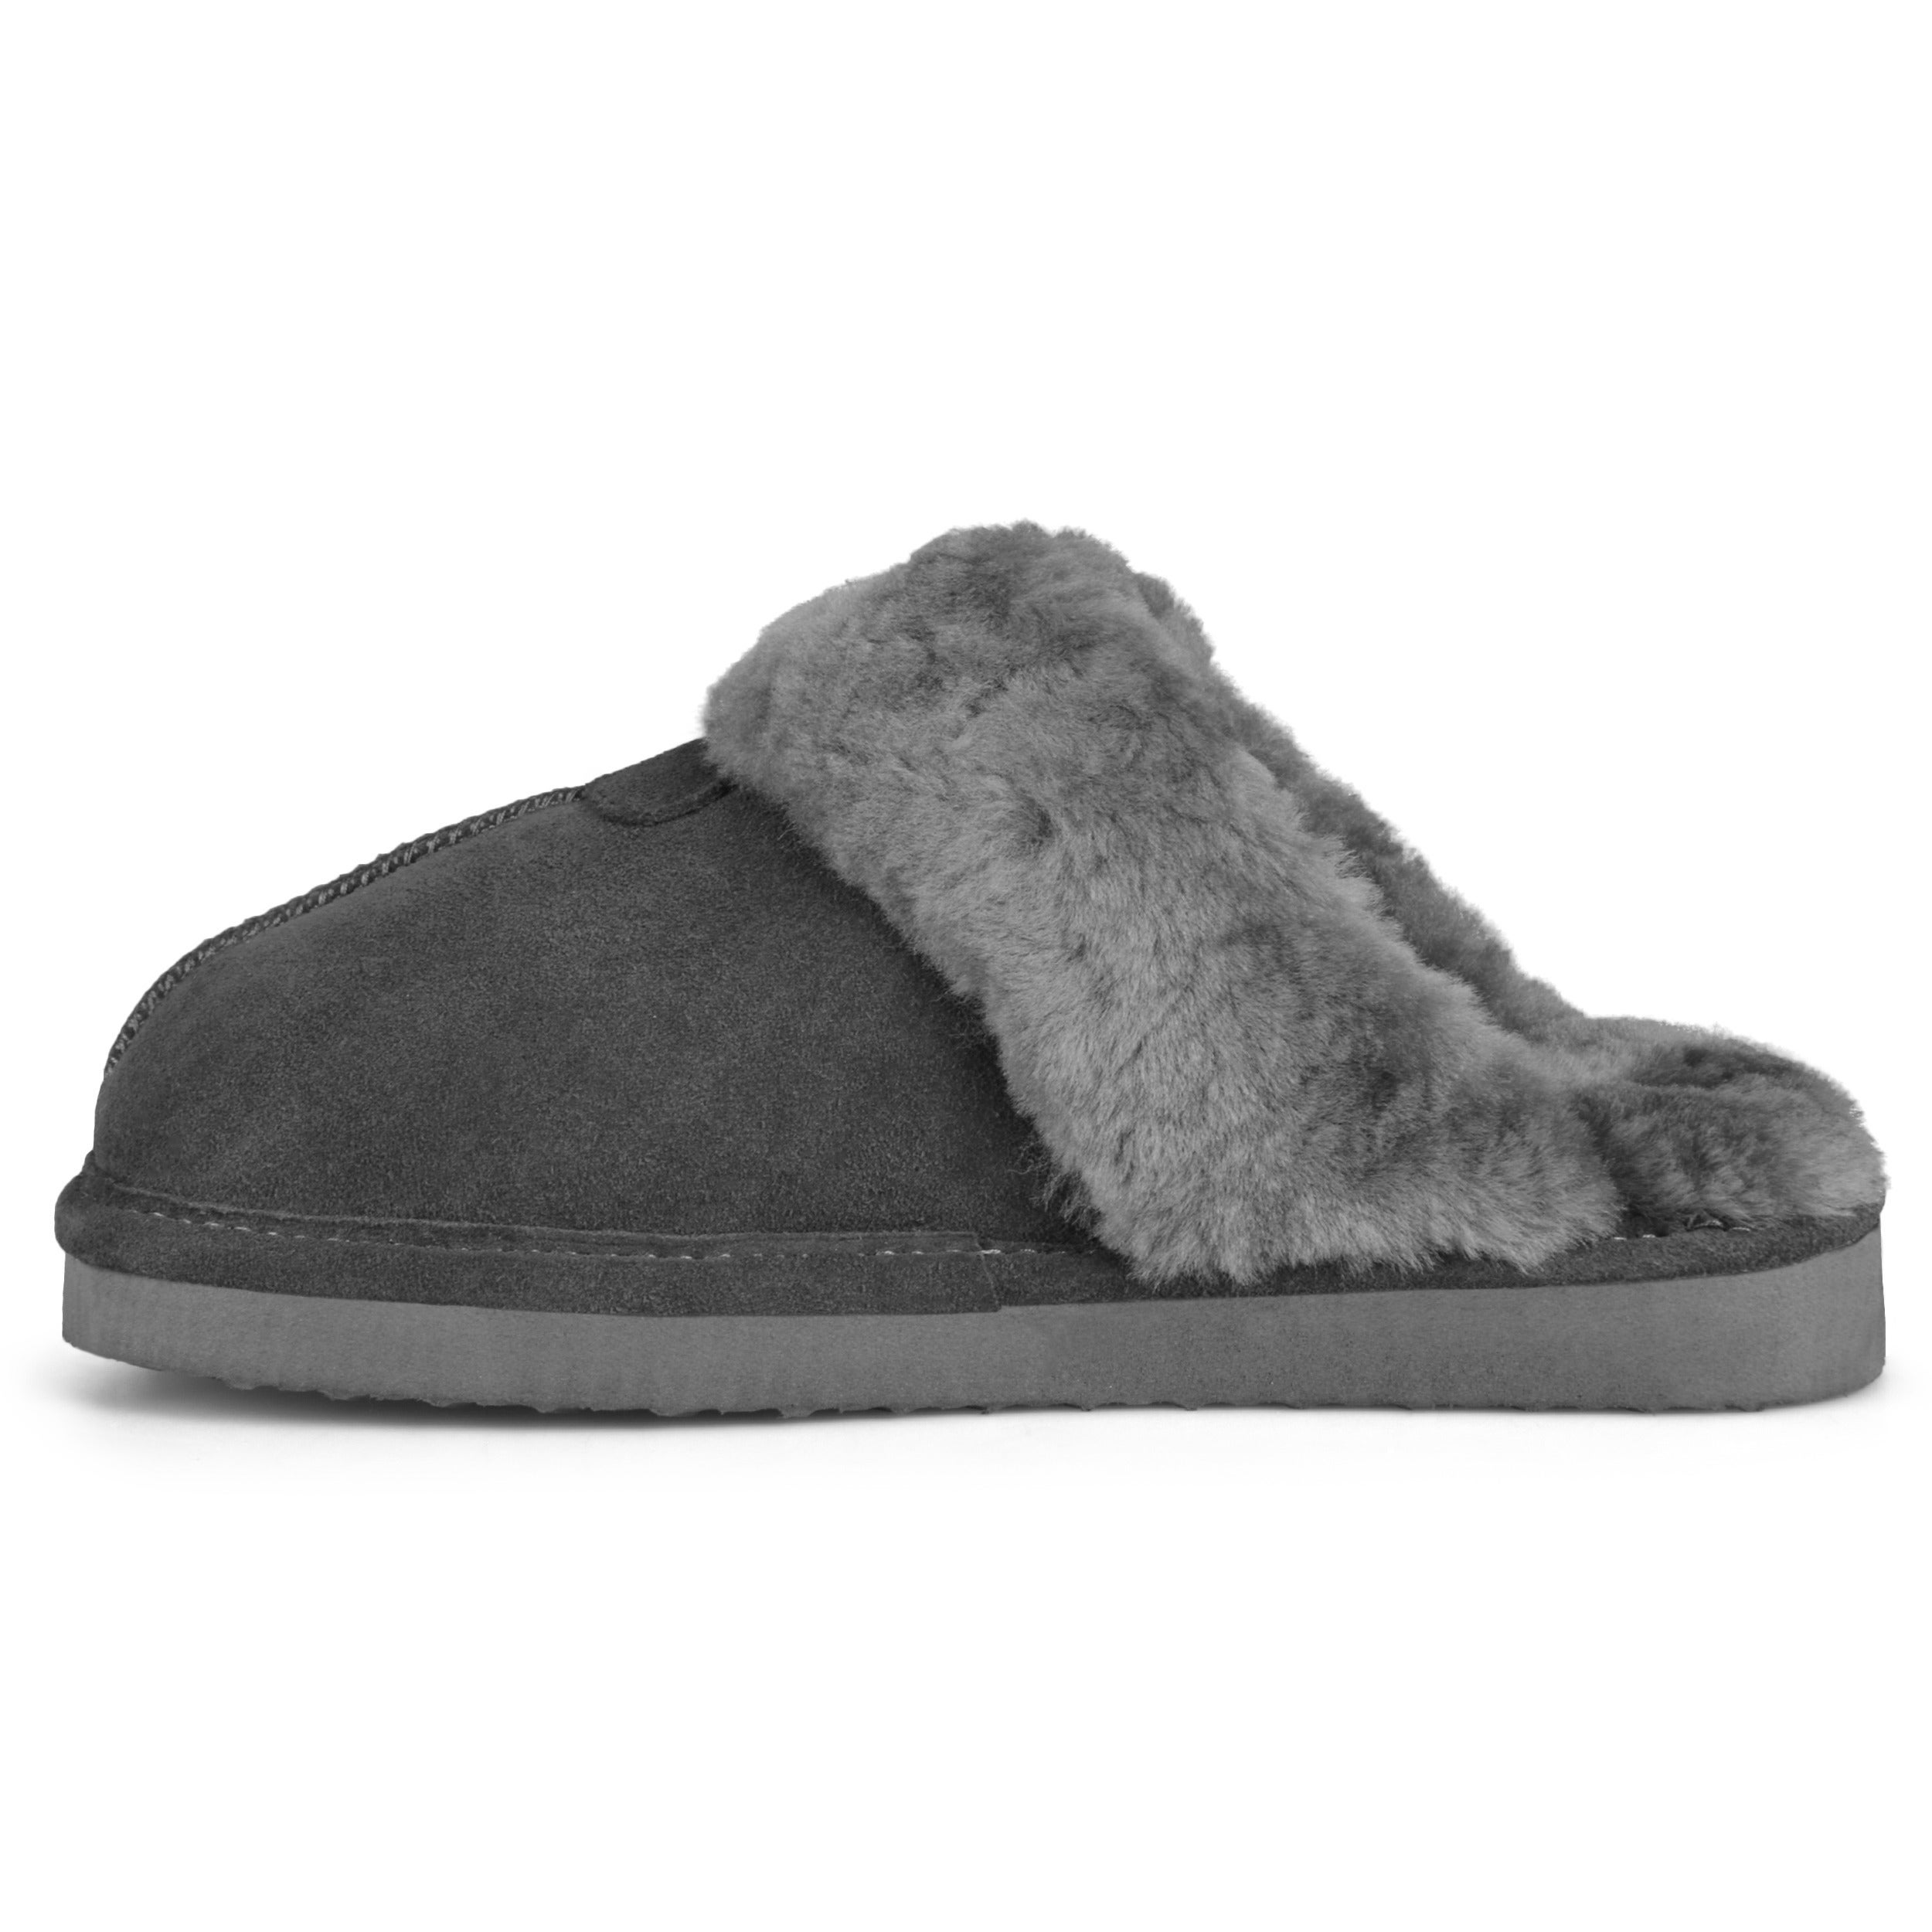 1f88f318510 Shop Brumby Women s Backless Sheepskin Slippers - Free Shipping Today -  Overstock - 3572524